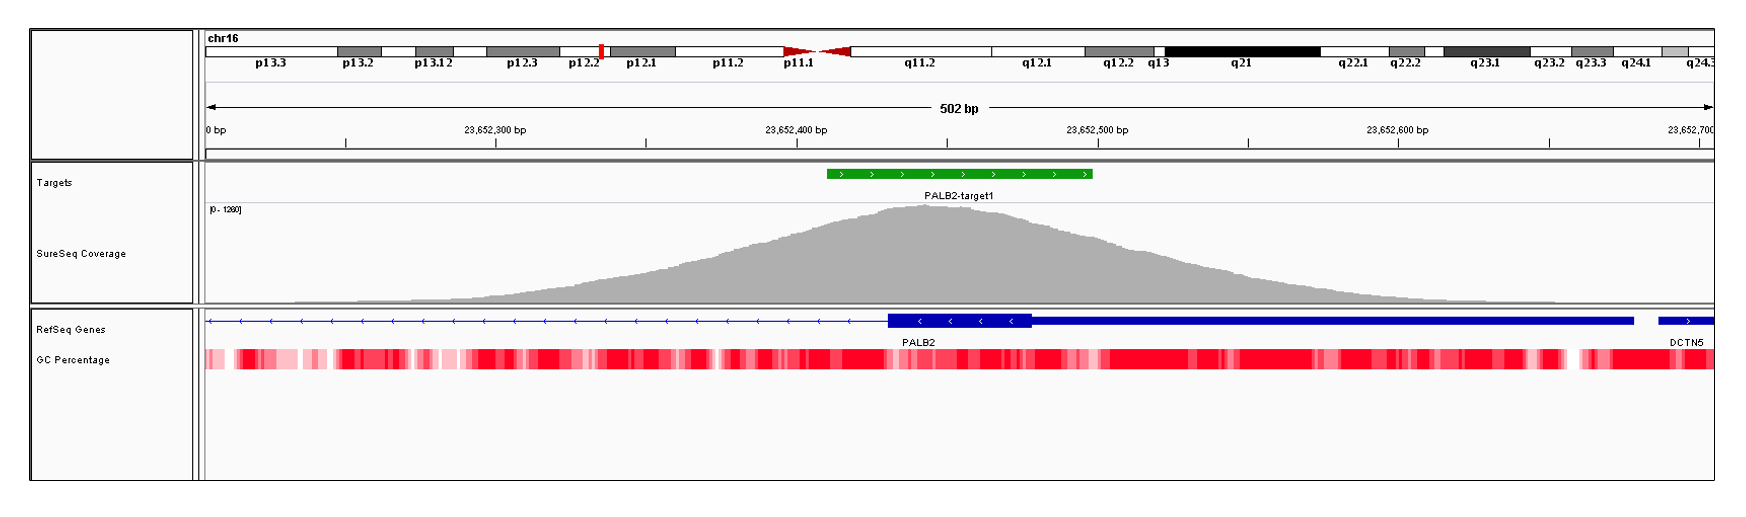 PALB2 Exon 1 (hg19 chr16:23652431-23652678). Depth of coverage per base (grey). Targeted region (green). Gene coding region as defined by RefSeq (blue). GC percentage (red). Image